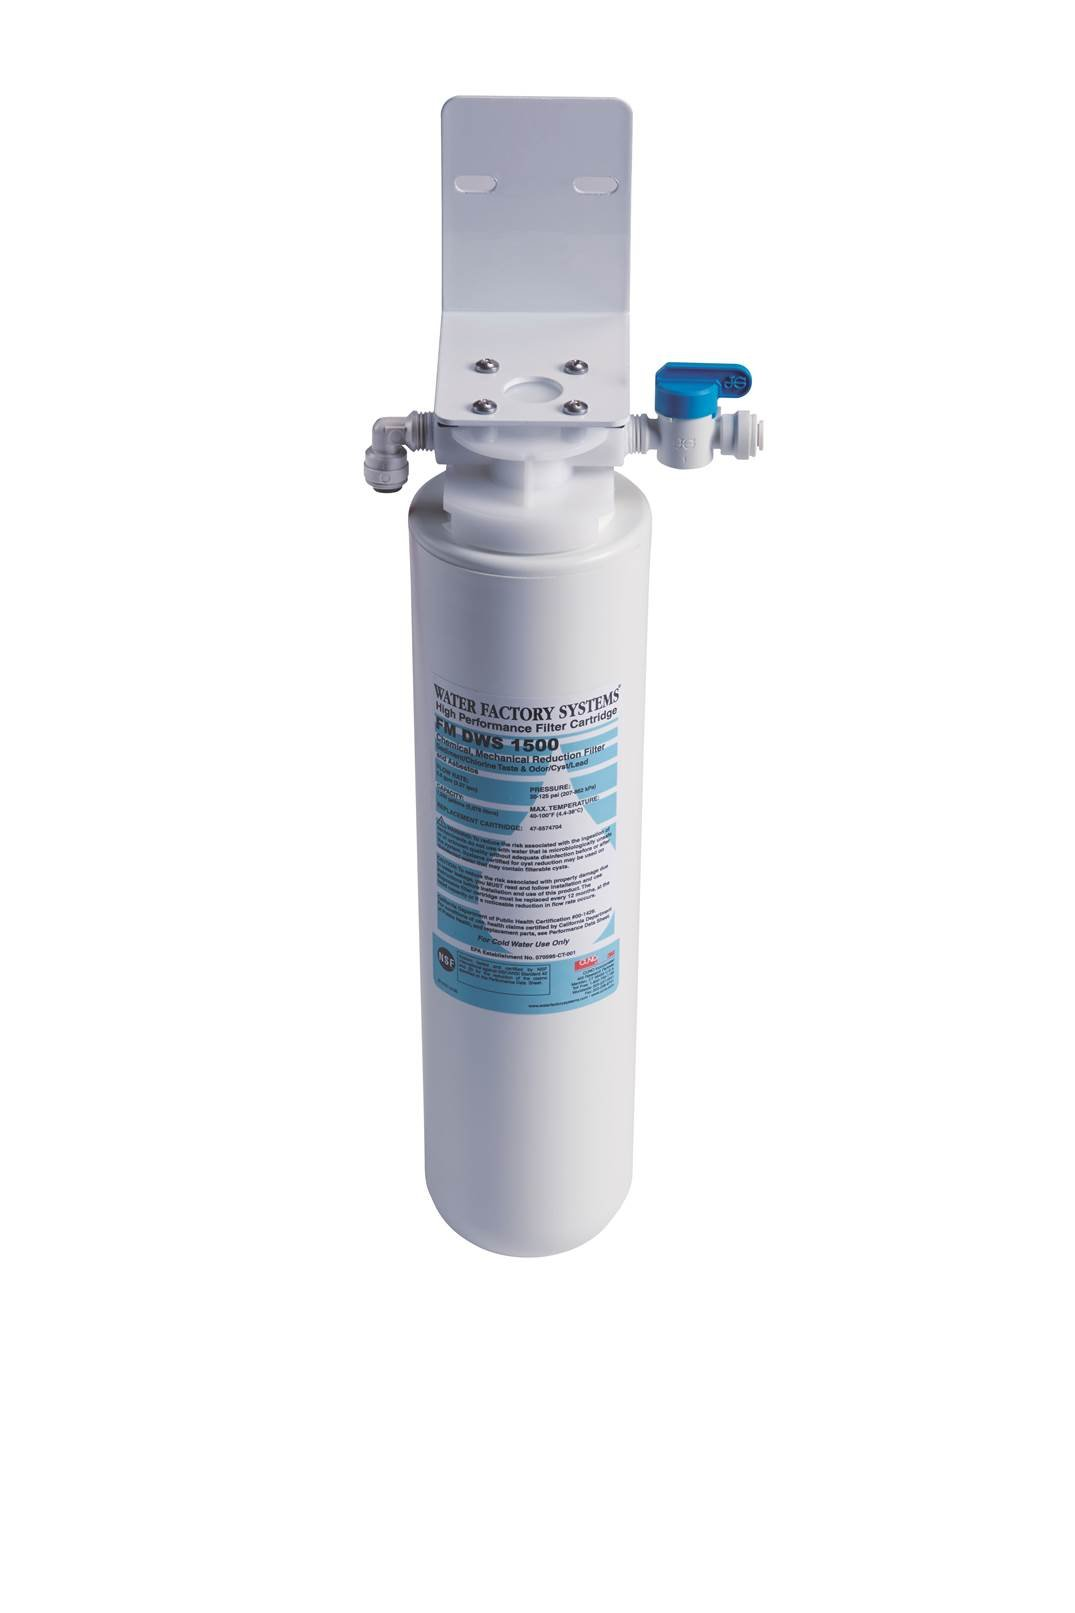 Waste King FM DWS 1500 ClearWater 1500 Gallon Single Cartridge Filtration System